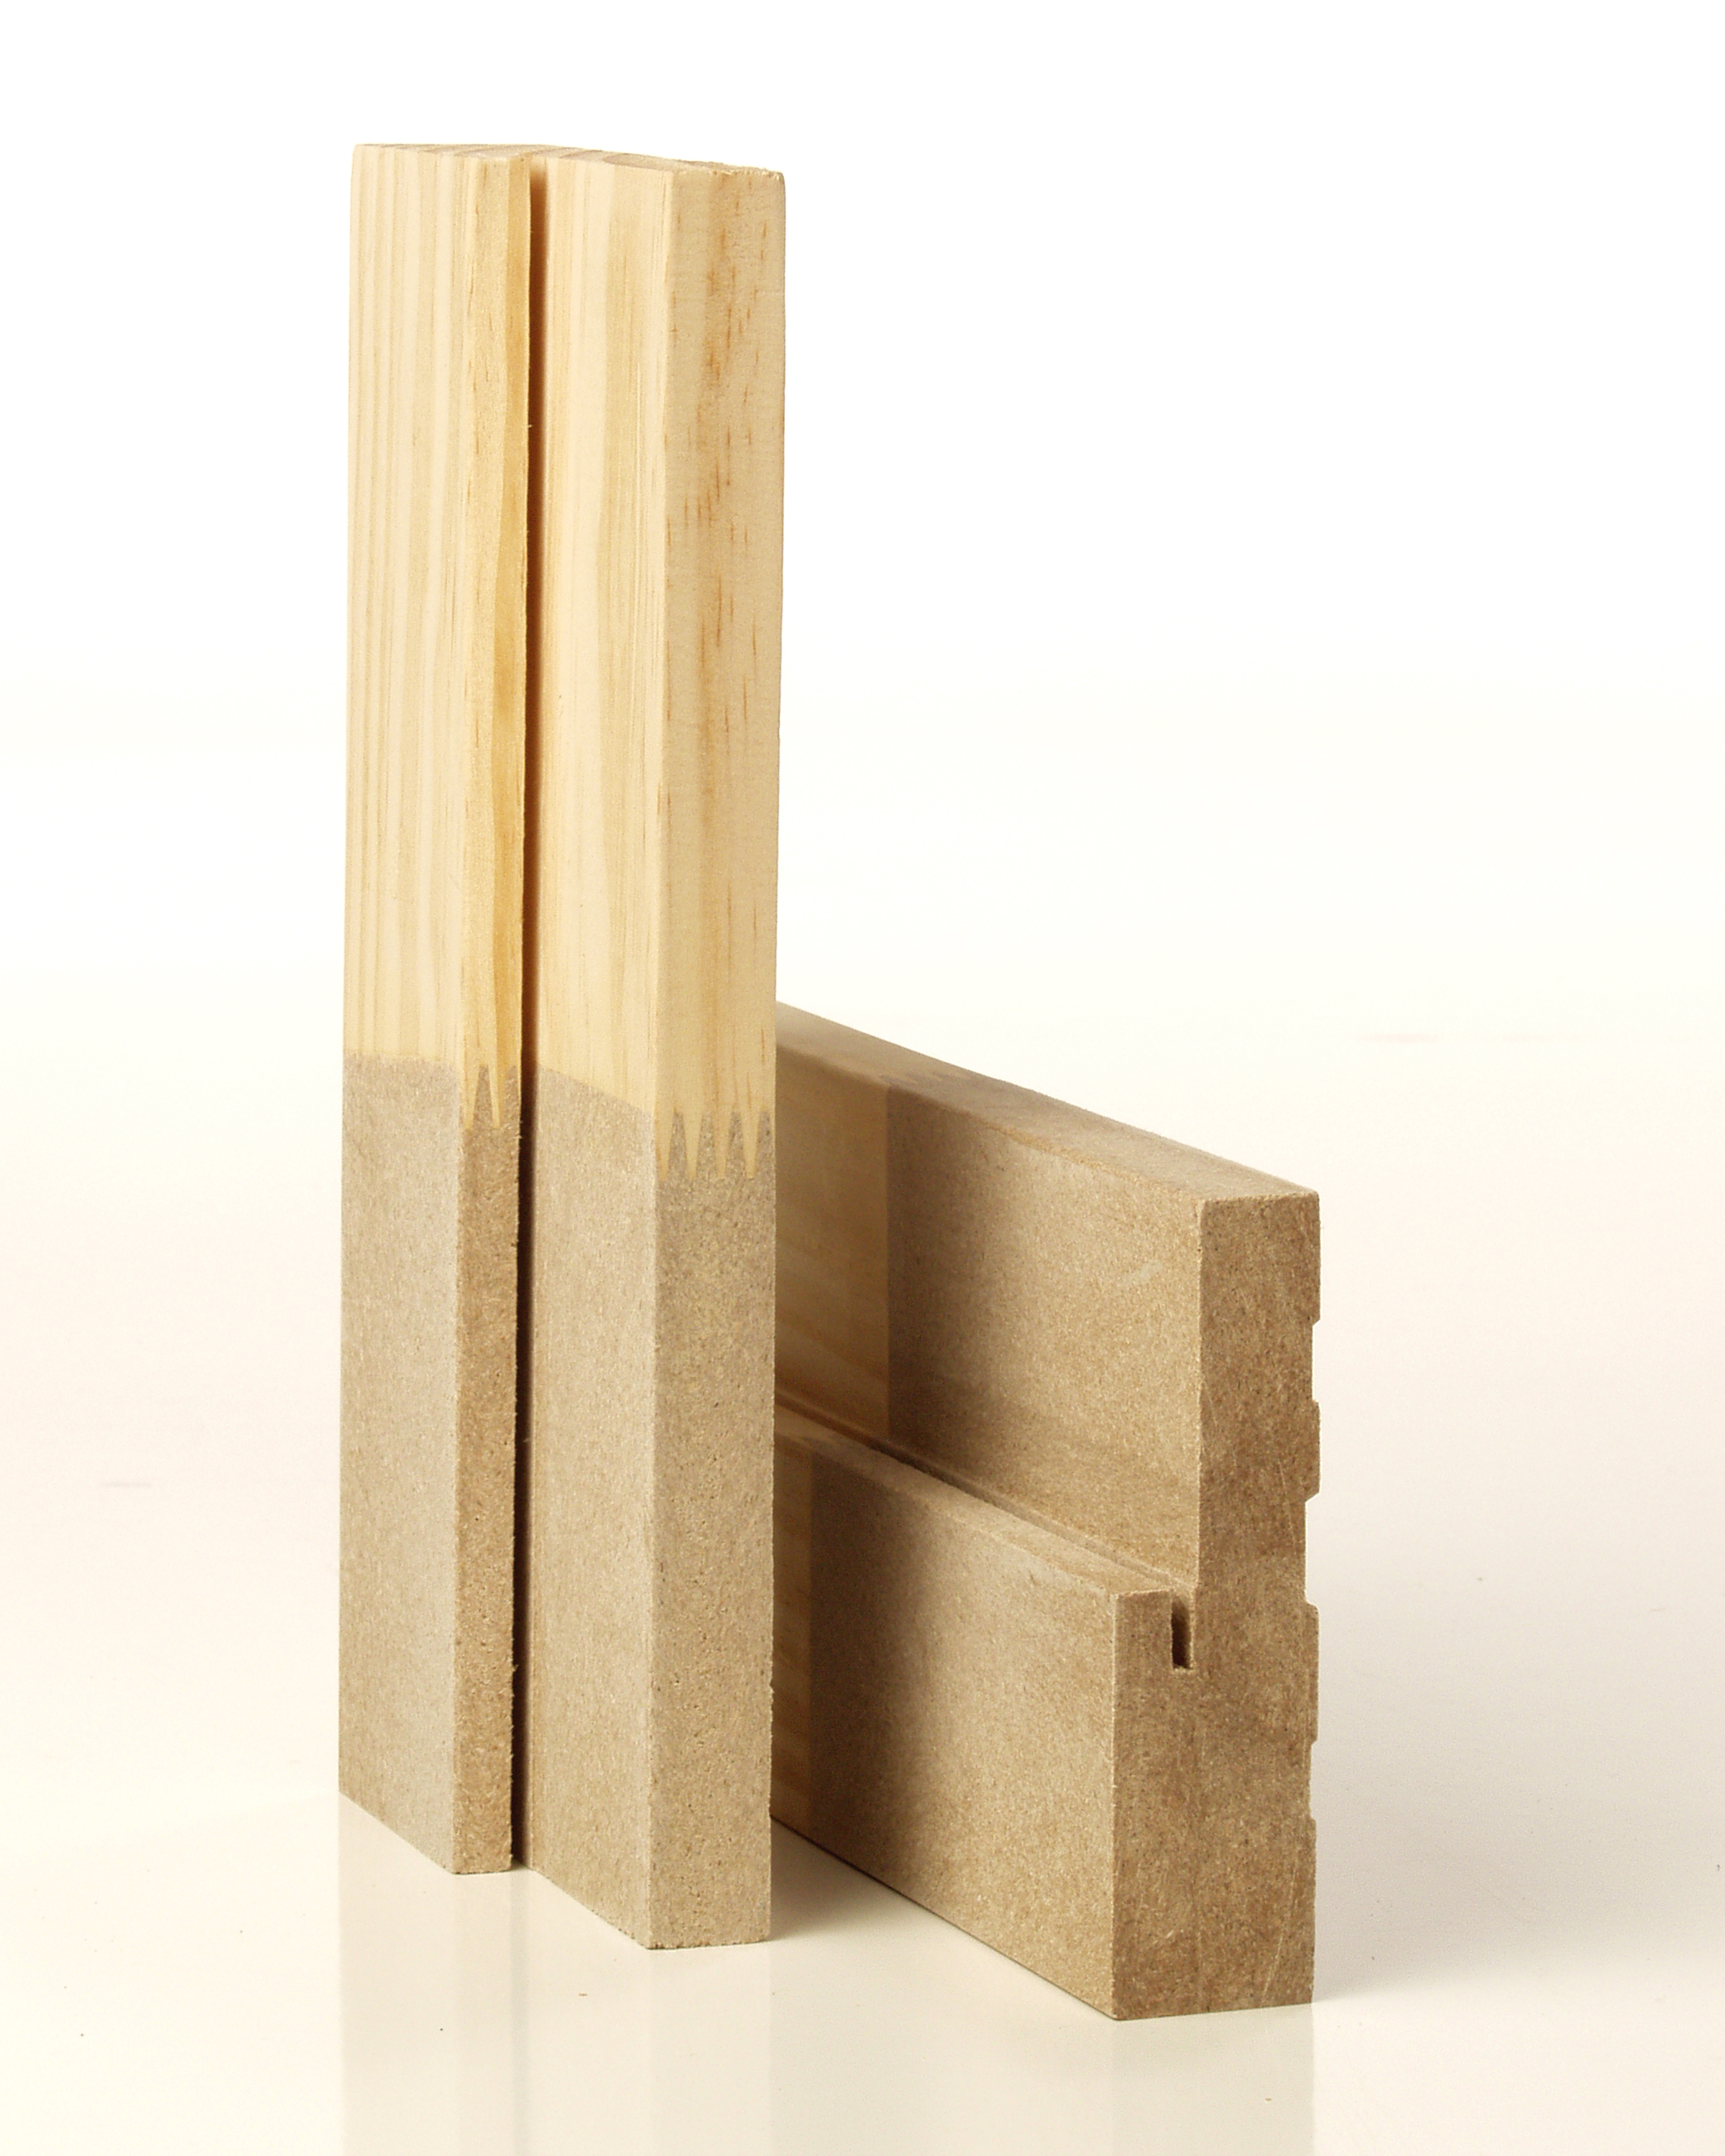 Milled wood jamb sitting on white backdrop